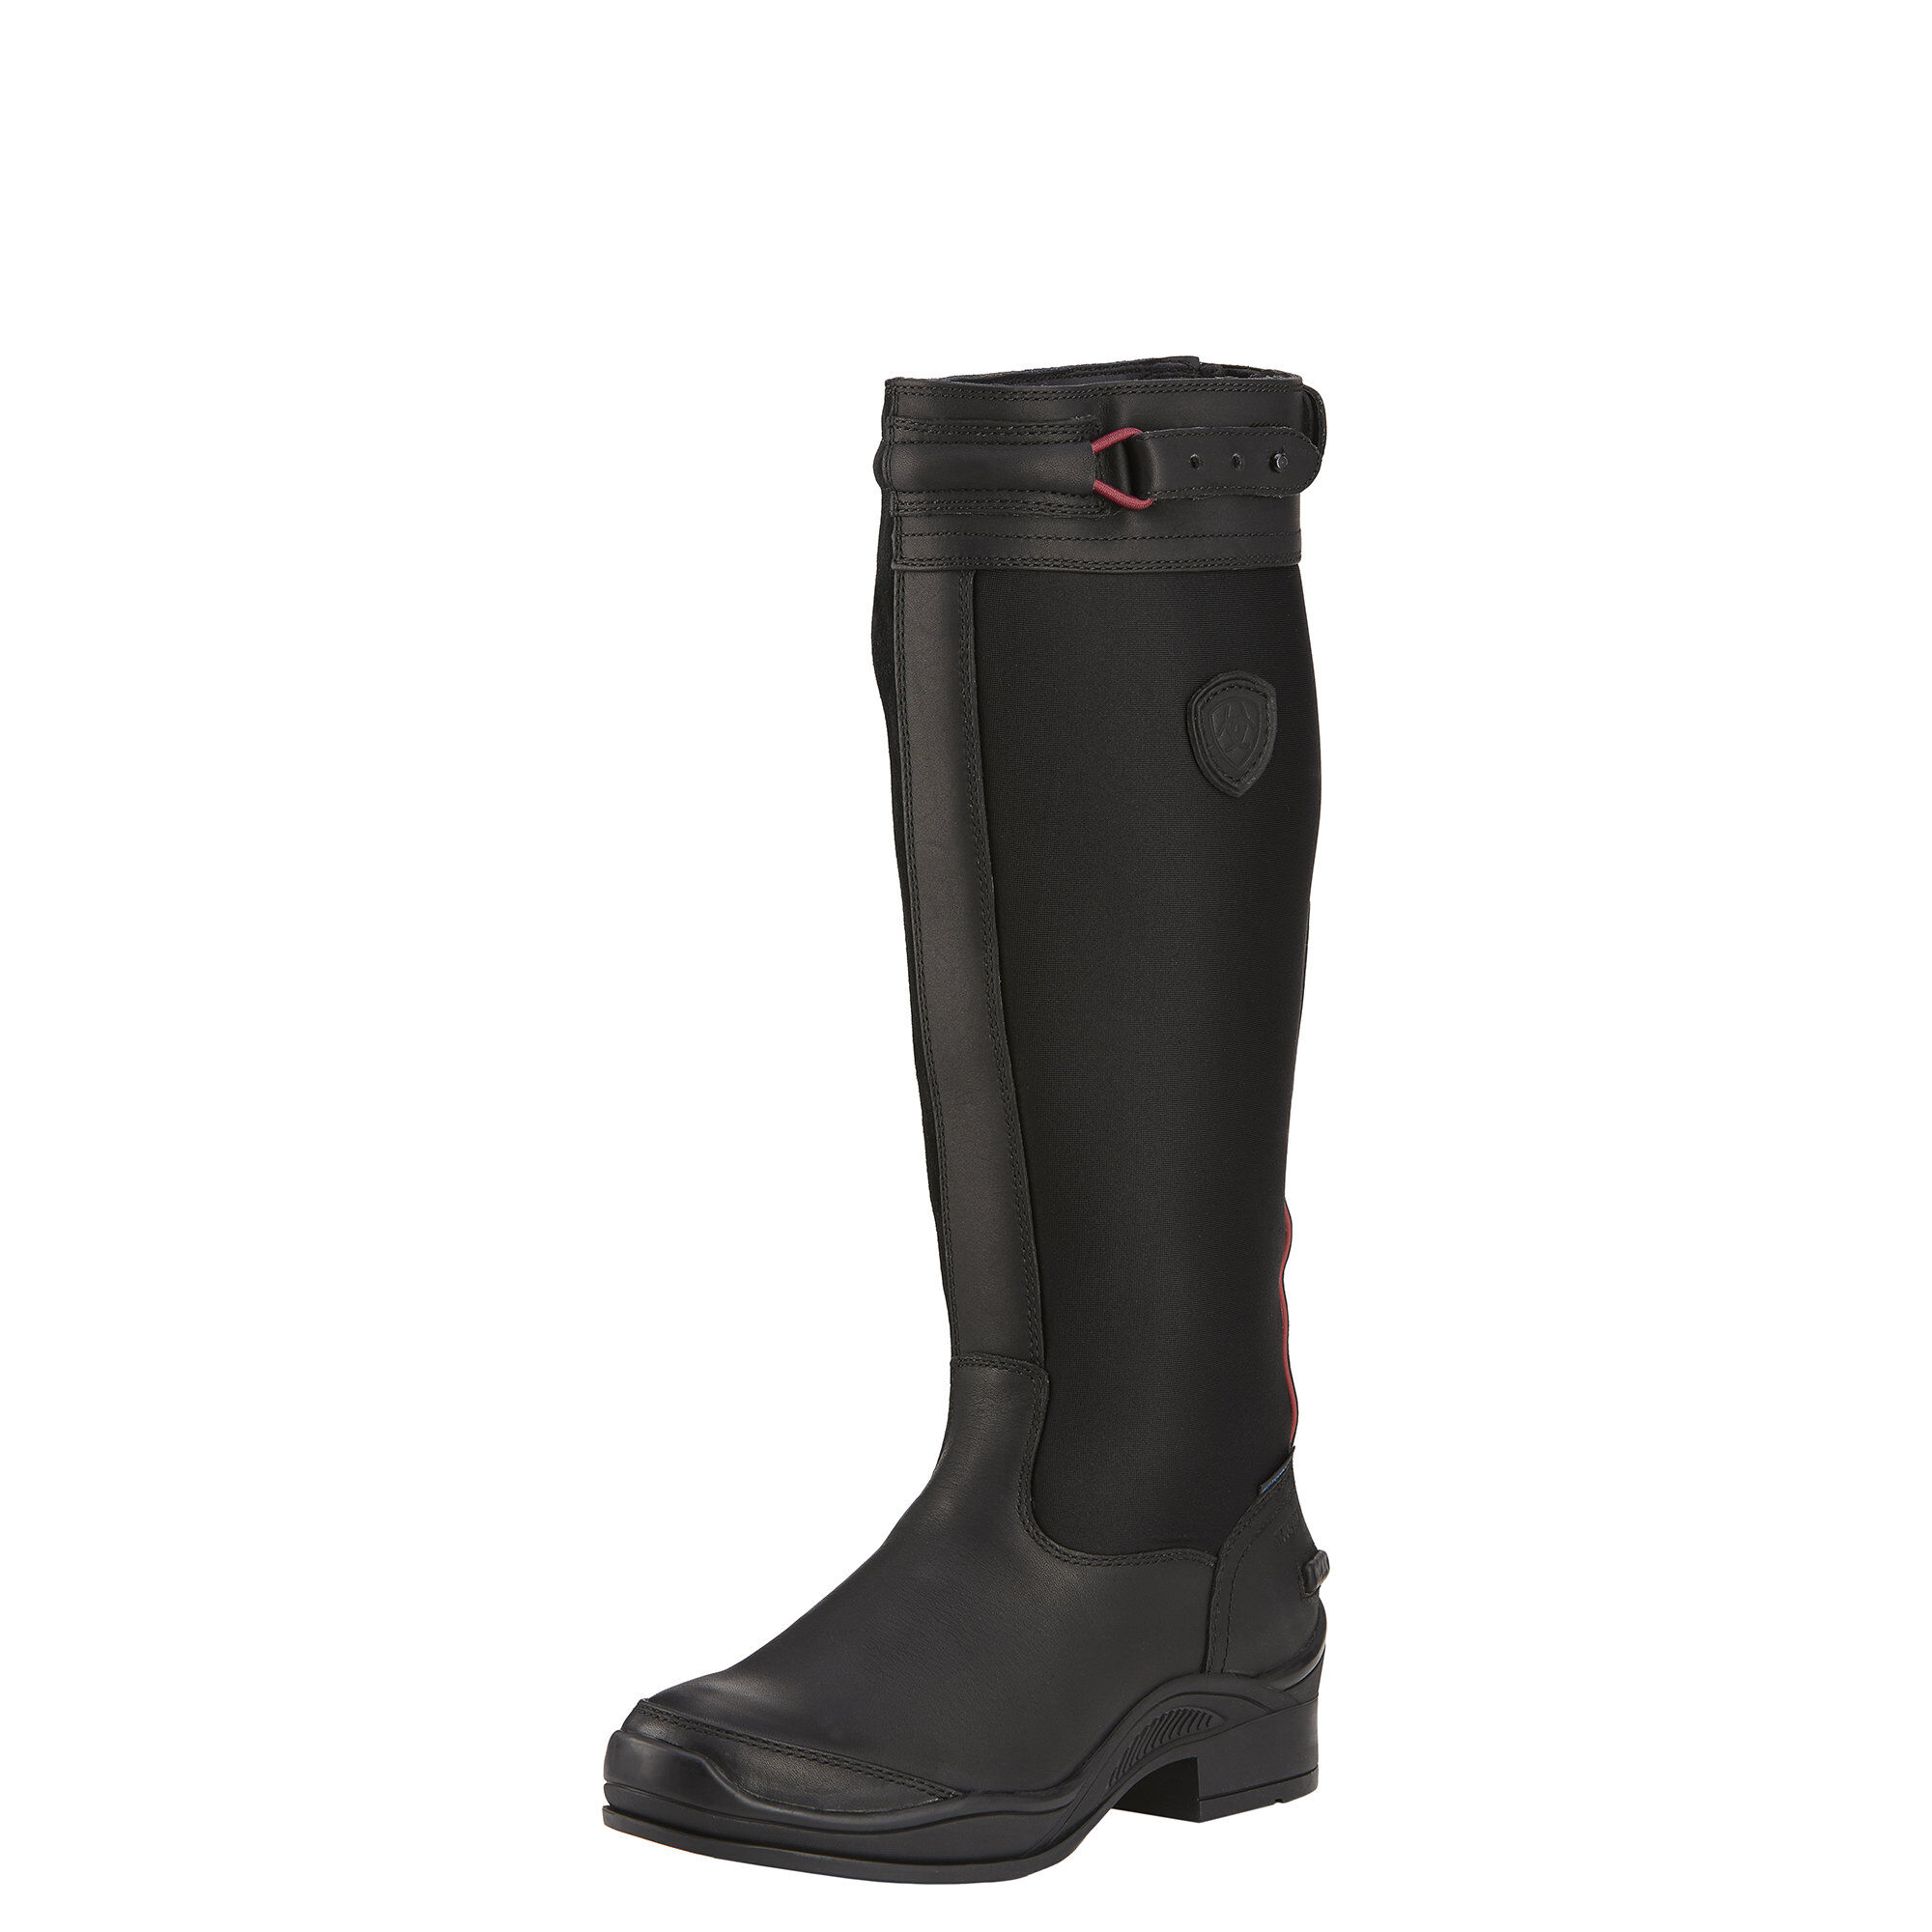 Extreme Waterproof Insulated Tall Riding Boot